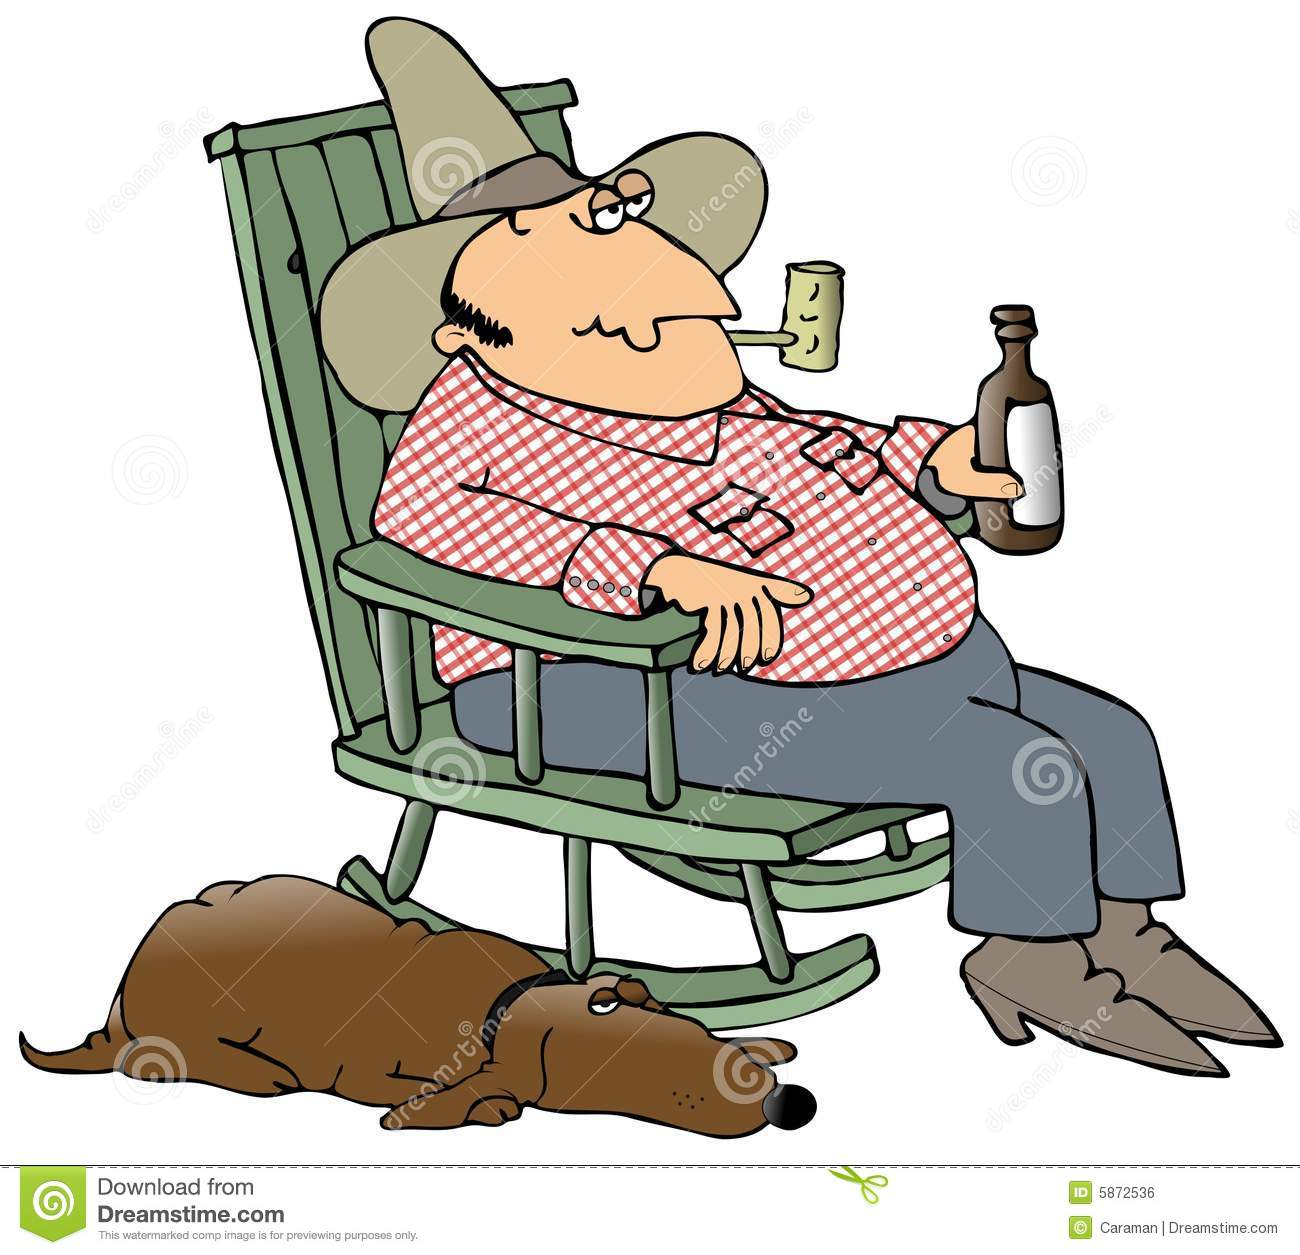 Hillbilly Stock Photos, Images, & Pictures - 1,350 Images